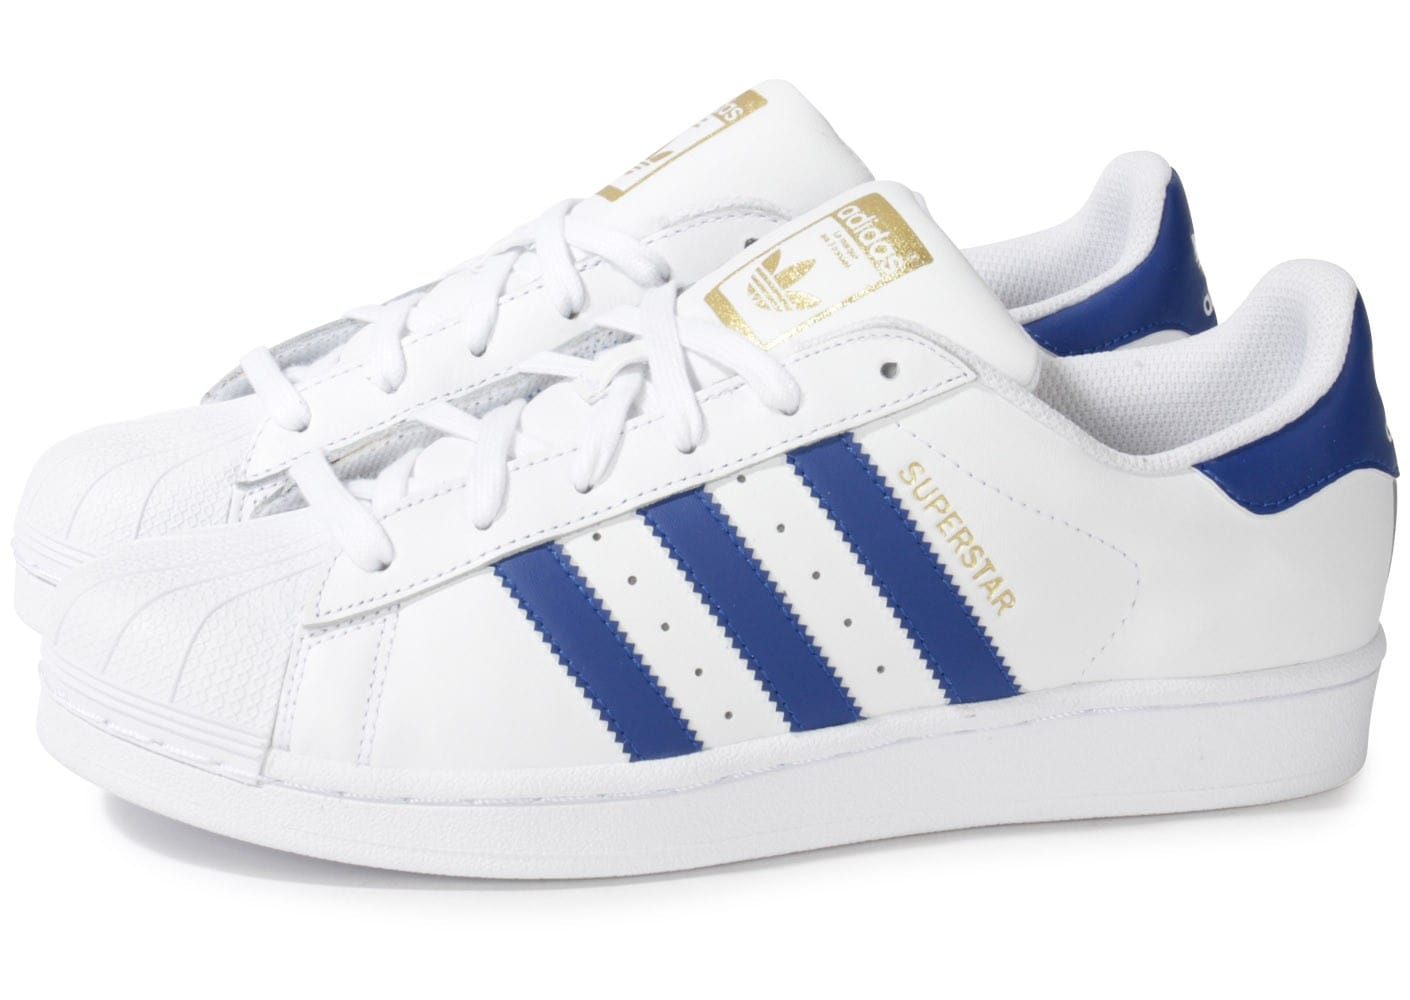 soldes adidas superstar foundation blanc bleu chaussures homme chausport. Black Bedroom Furniture Sets. Home Design Ideas